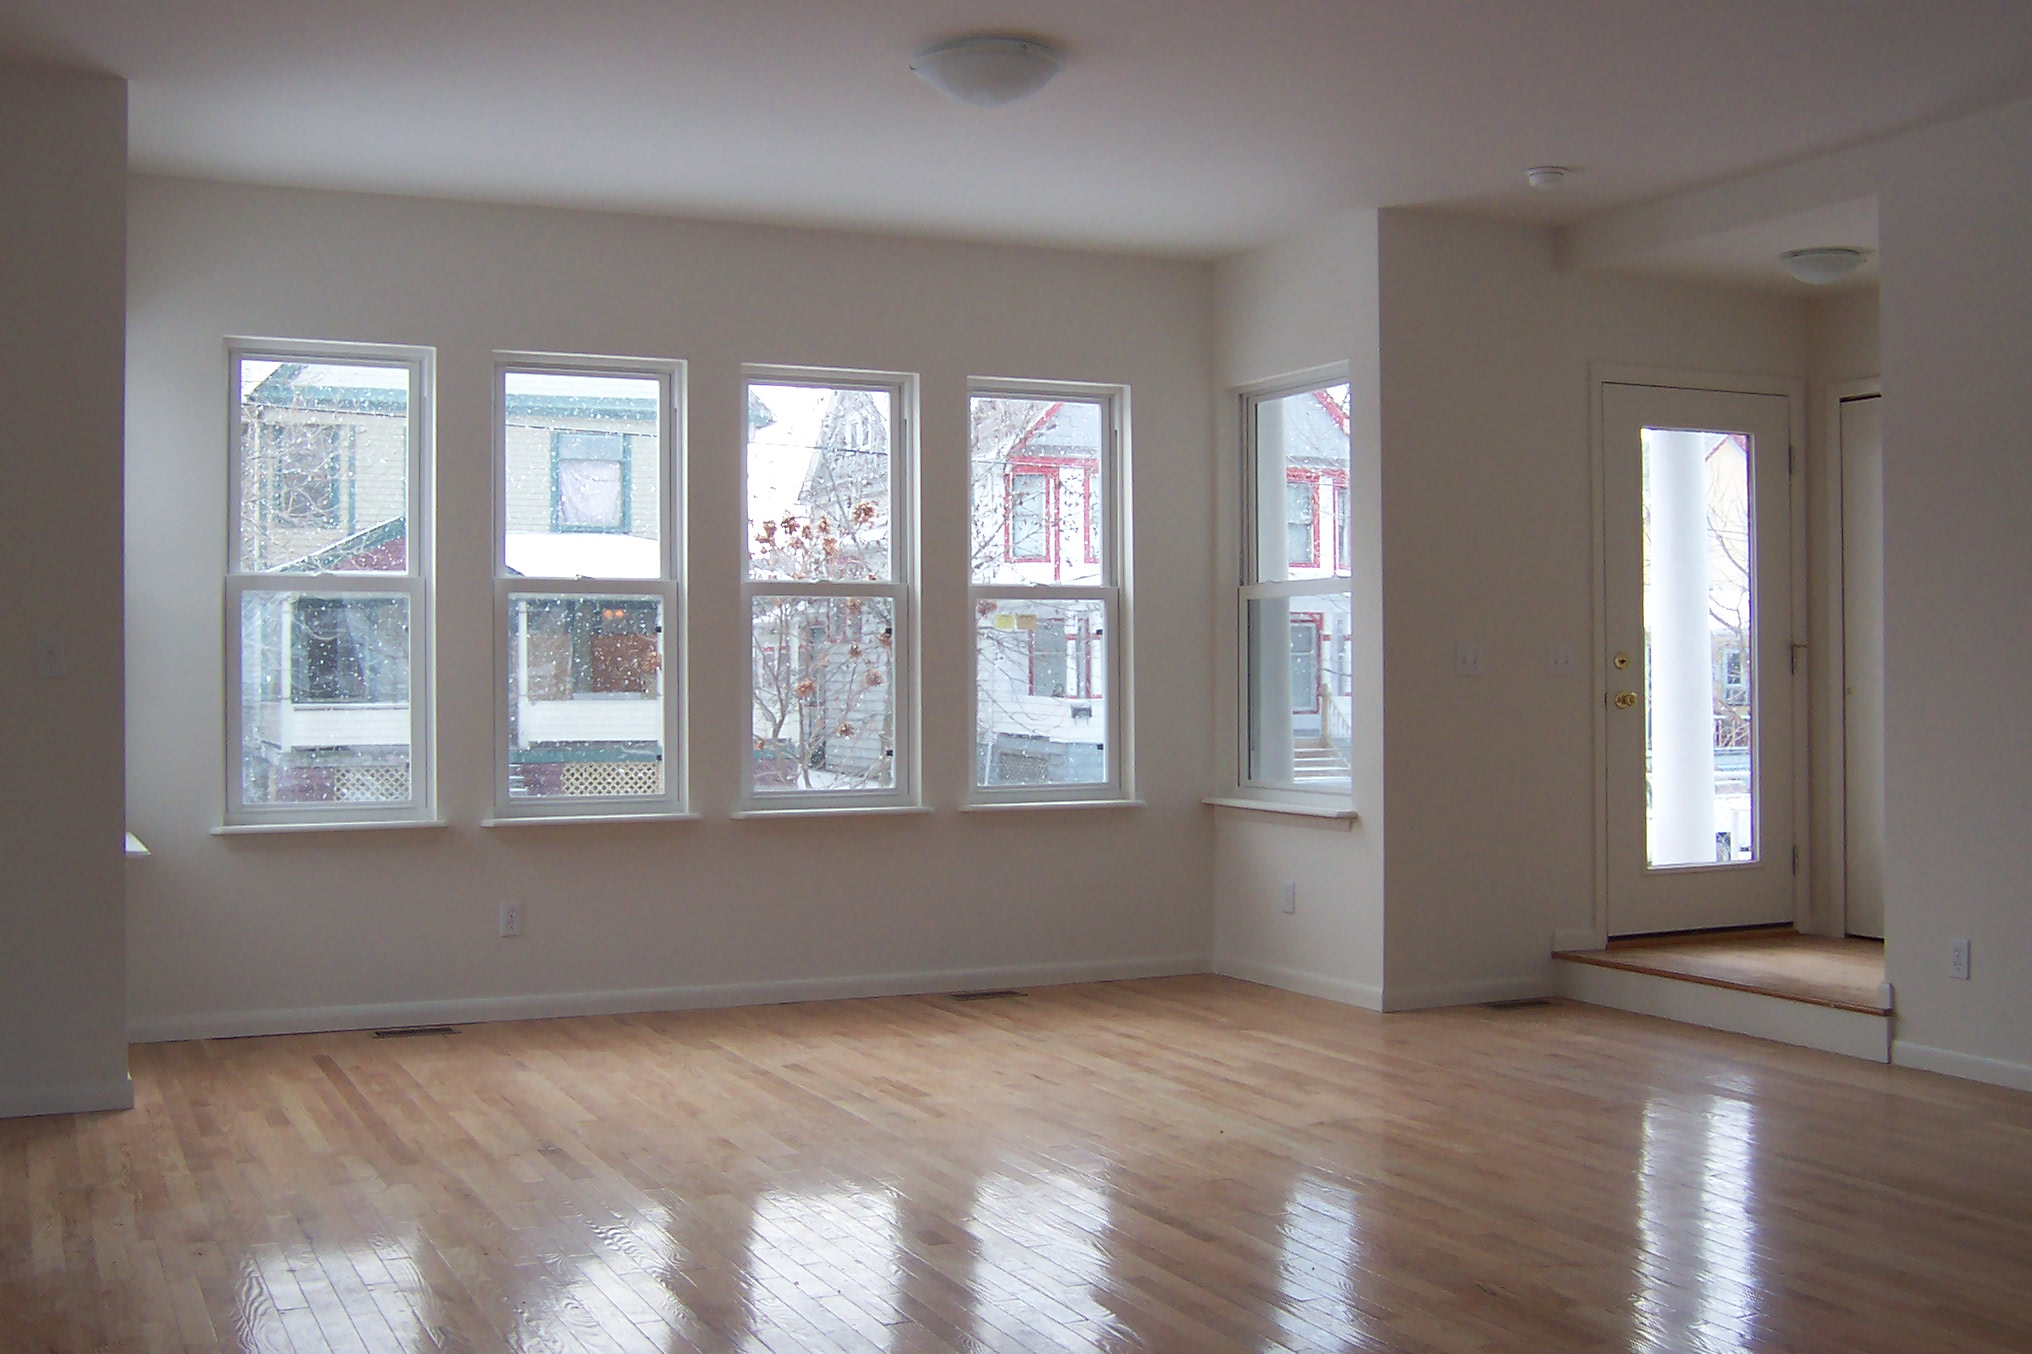 West 45th street ohio city single family homes photos - Living room with bay window ...